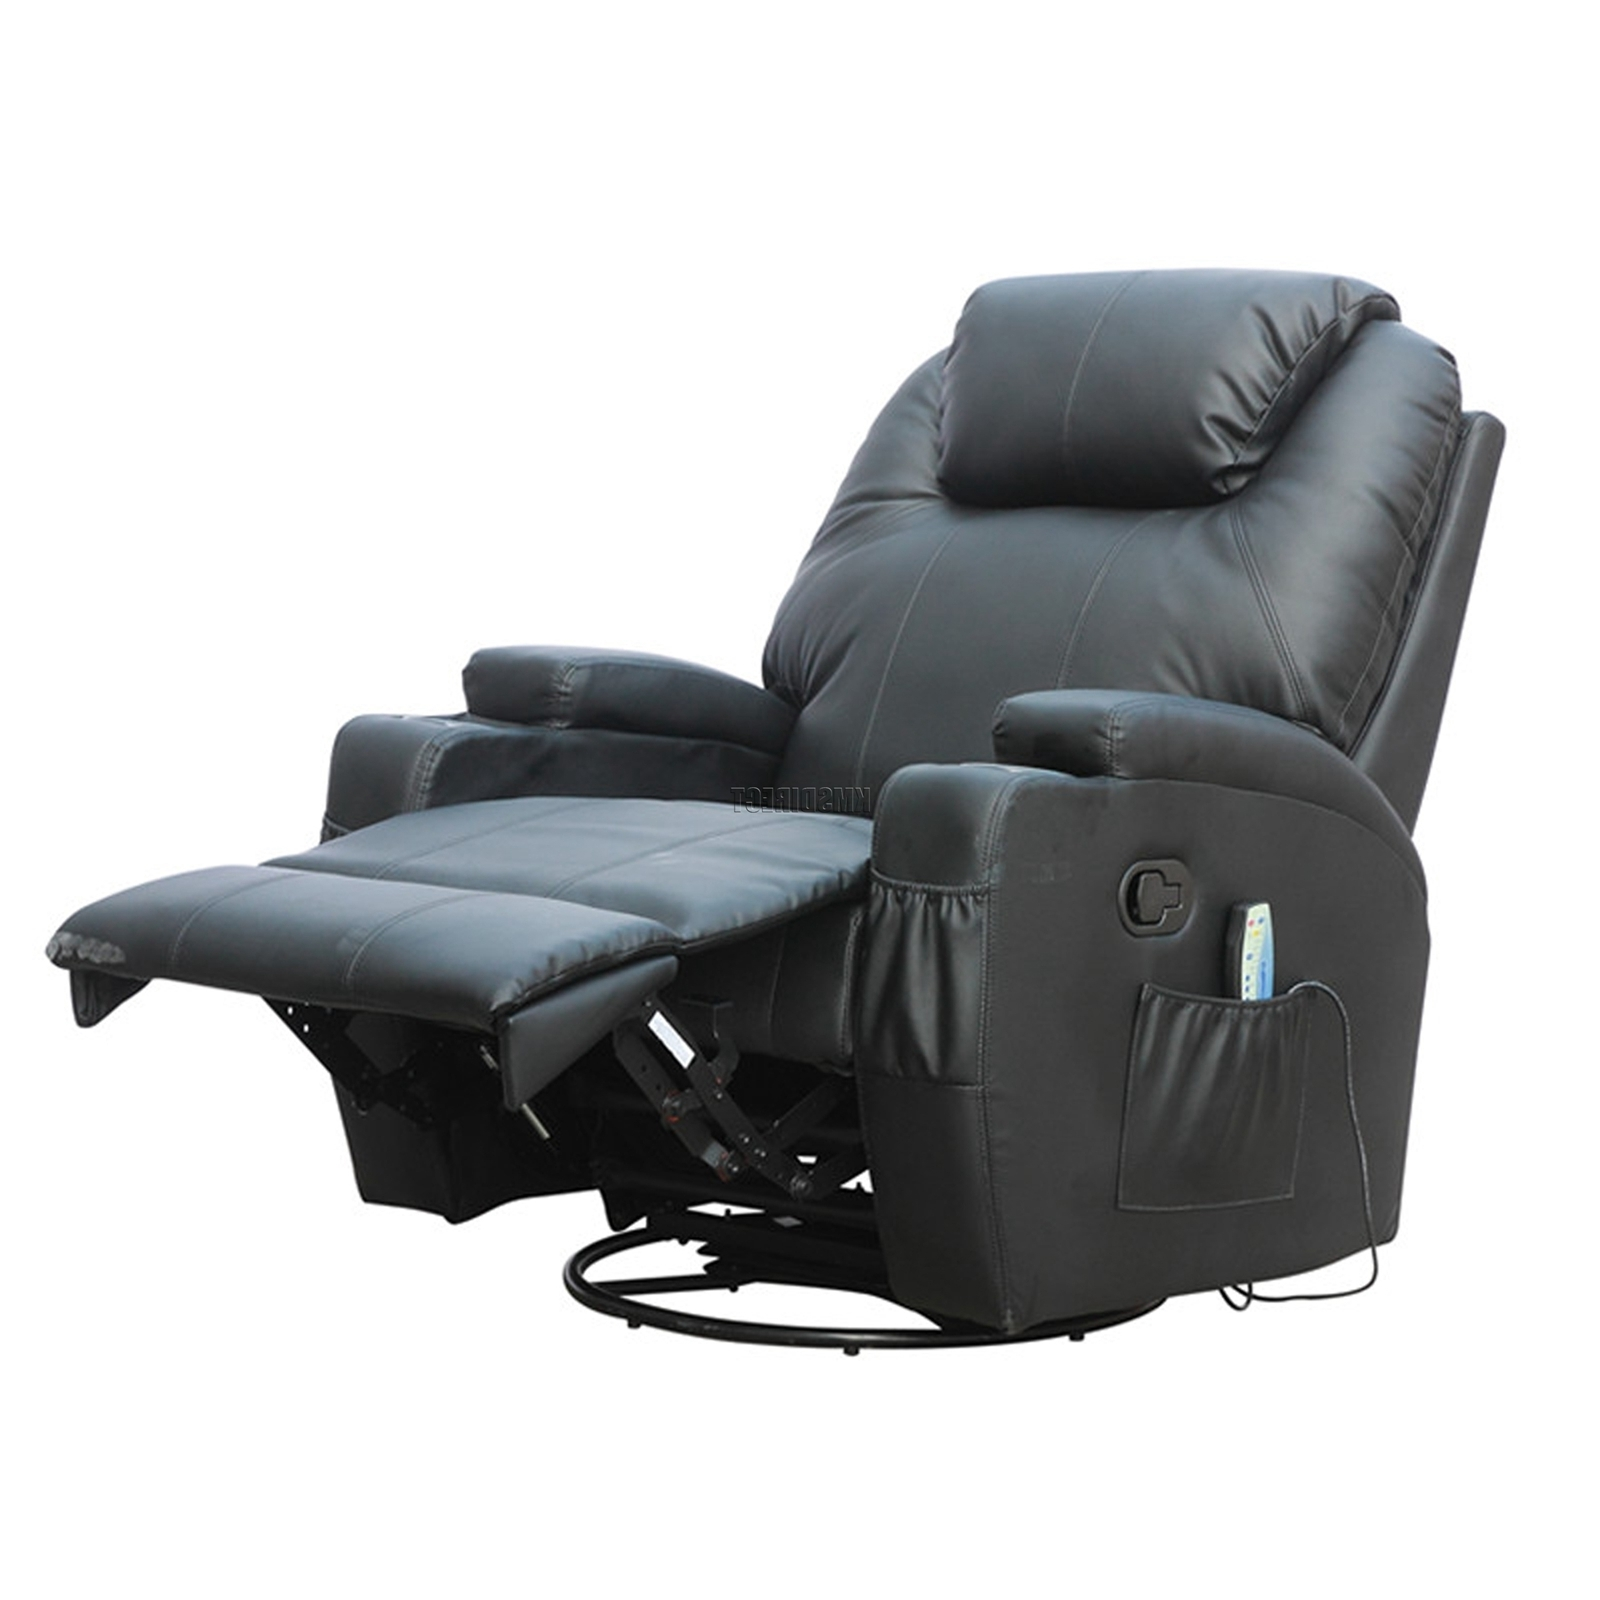 Trendy Rocking Sofa Chairs Throughout Foxhunter Bonded Leather Sofa Massage Recliner Chair Swivel (View 8 of 15)